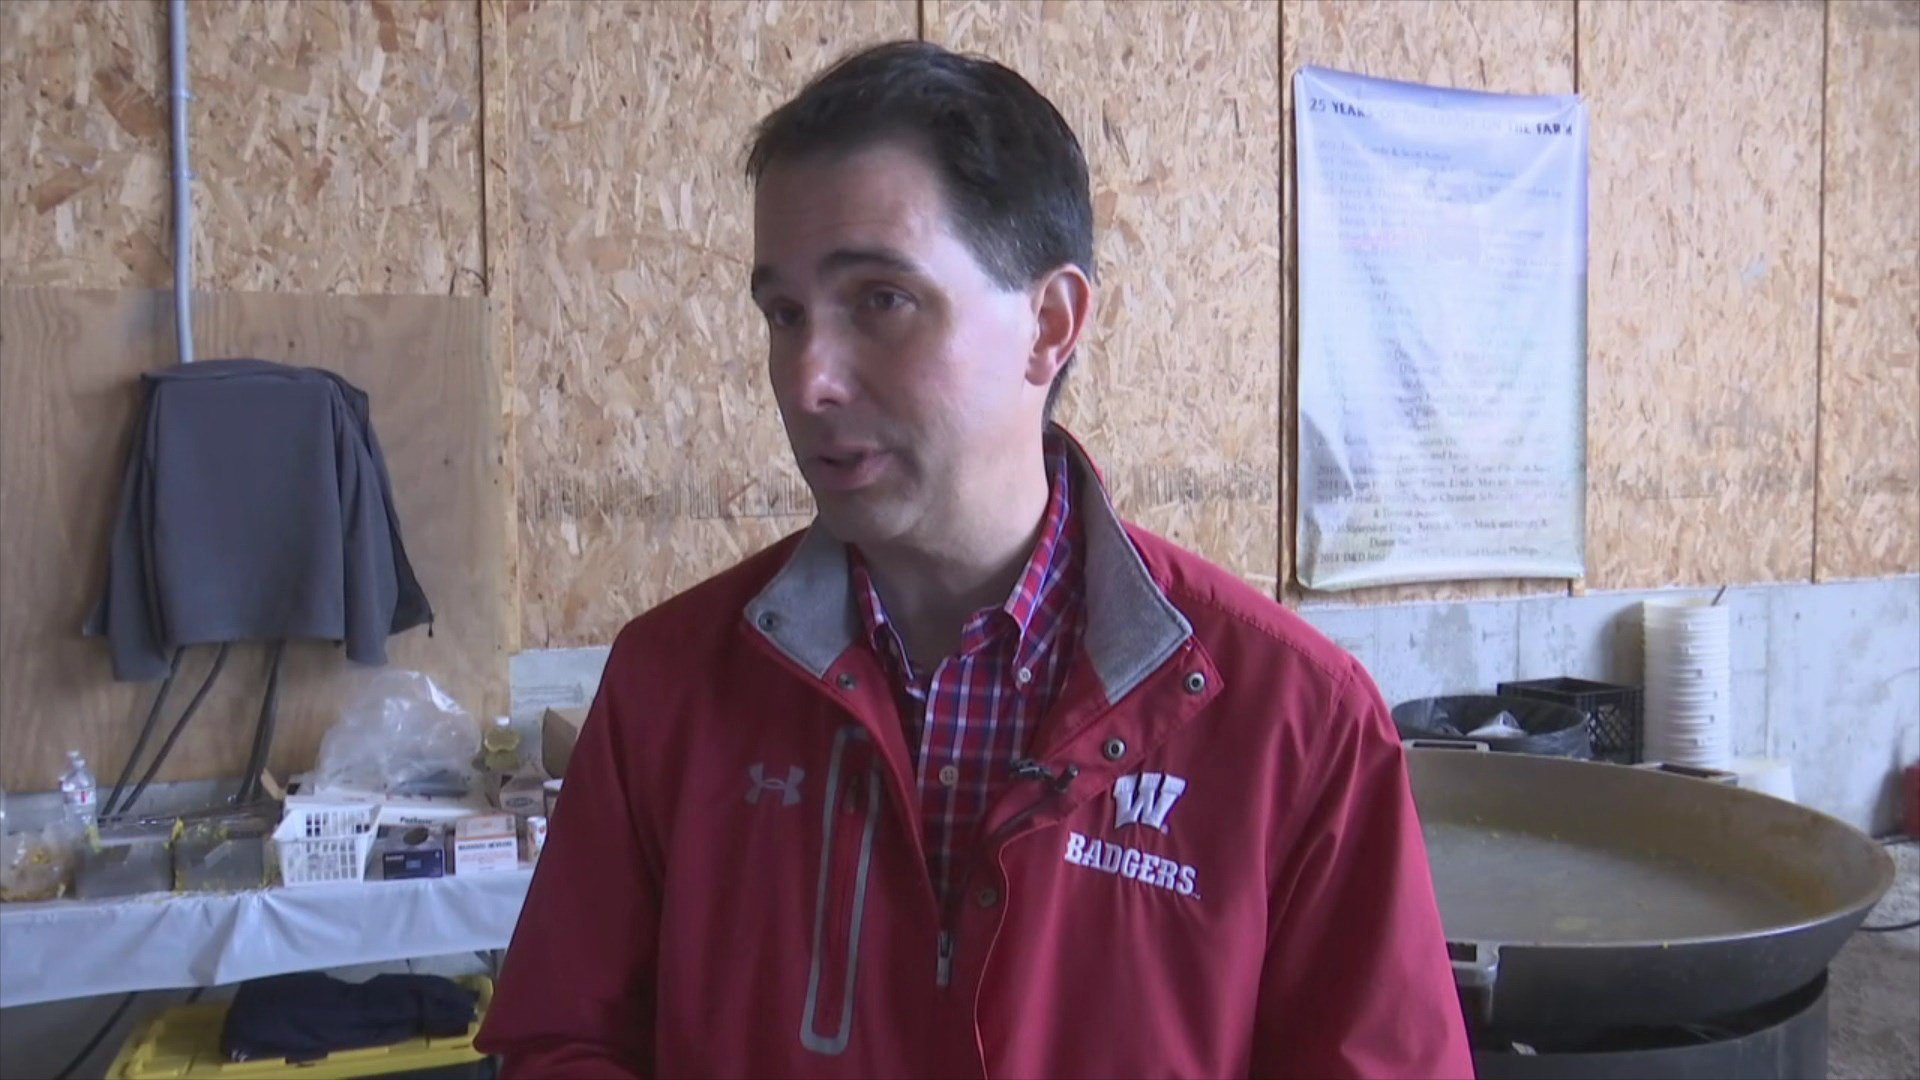 Gov. Scott Walker spoke about impact of tariffs on local farmers at event in Mishicot Sunday.